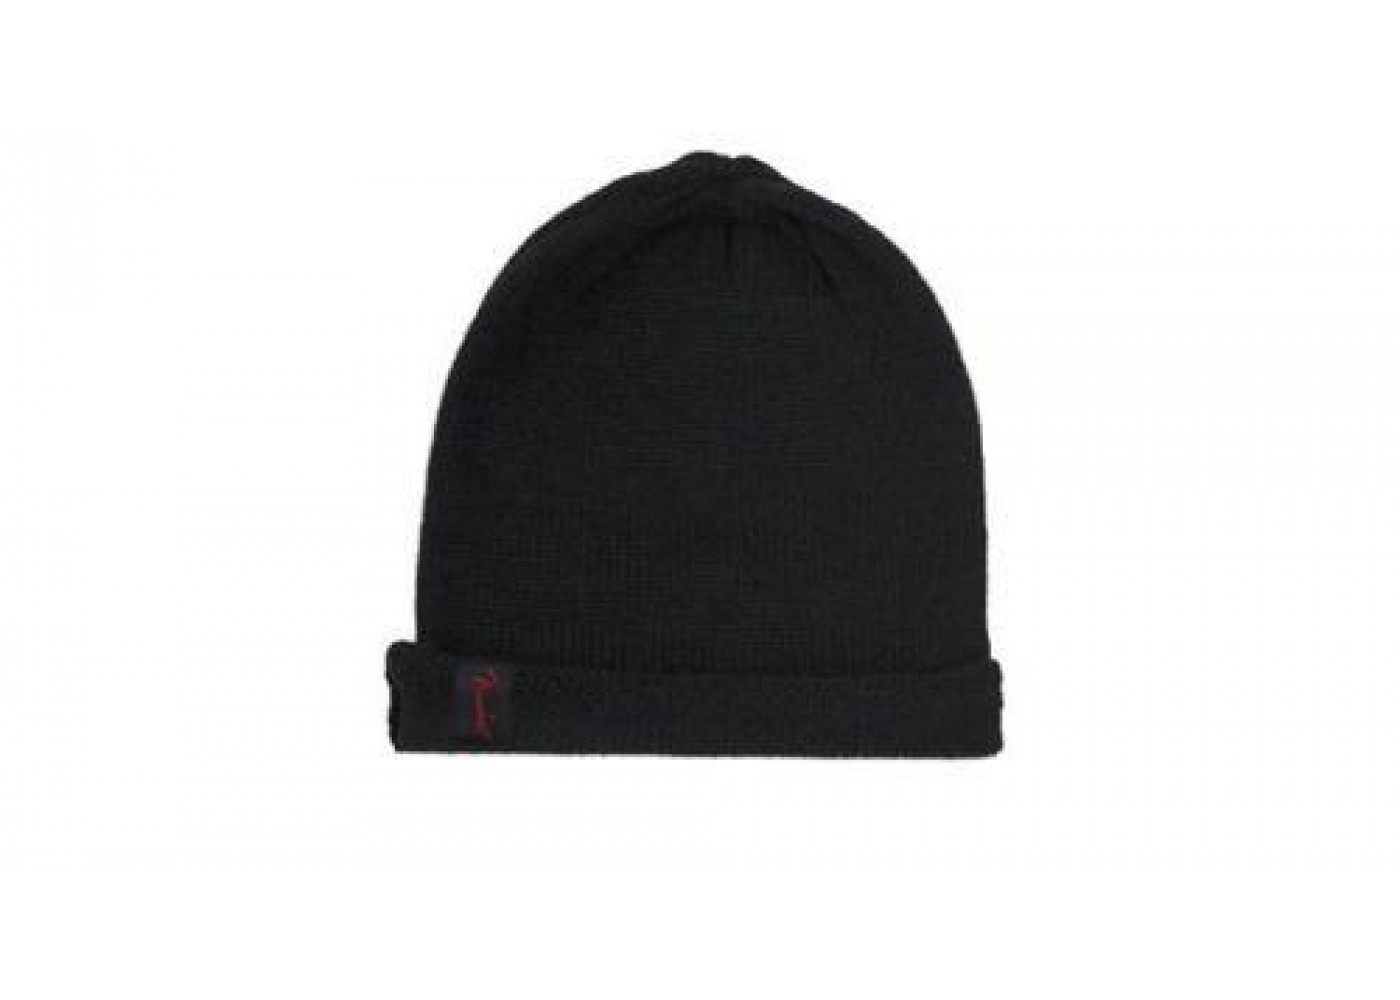 Genuine Fender Logo Slouch Beanie Stocking Cap - One Size Fits All   9106643000. LOADING IMAGES f5493e259c81